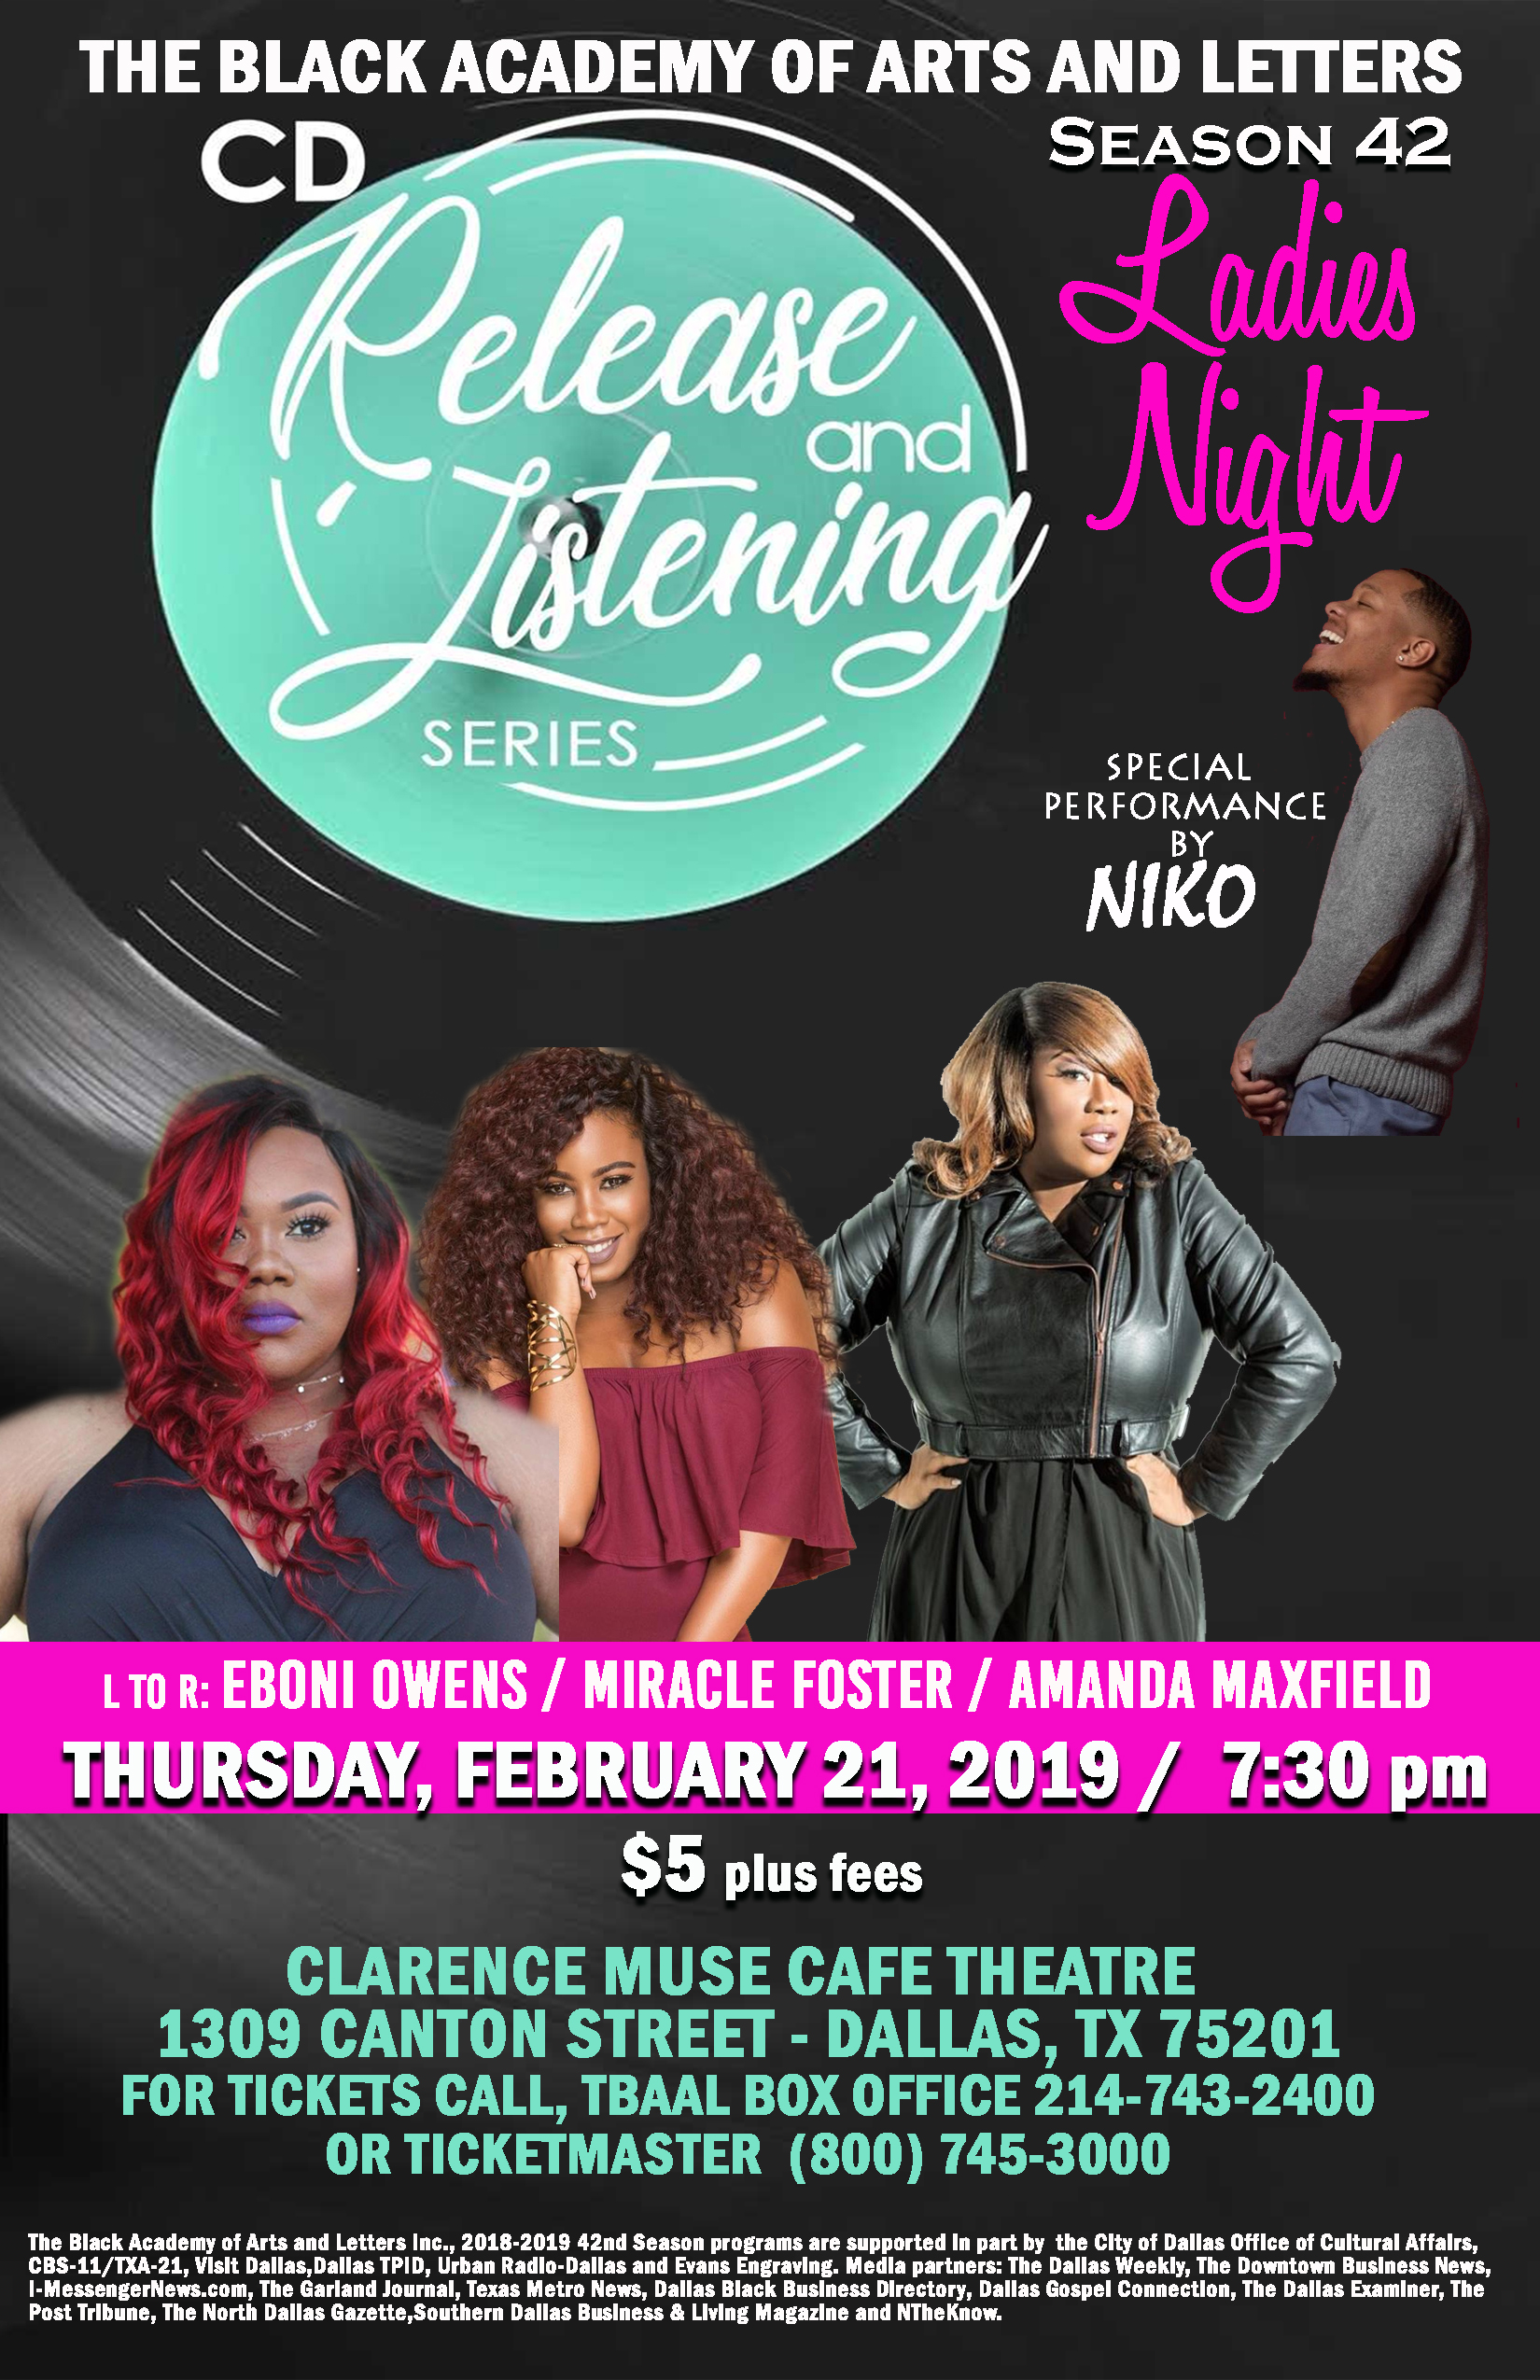 TBAAL'S LADIES NIGHT: FEBRUARY 21, 2019